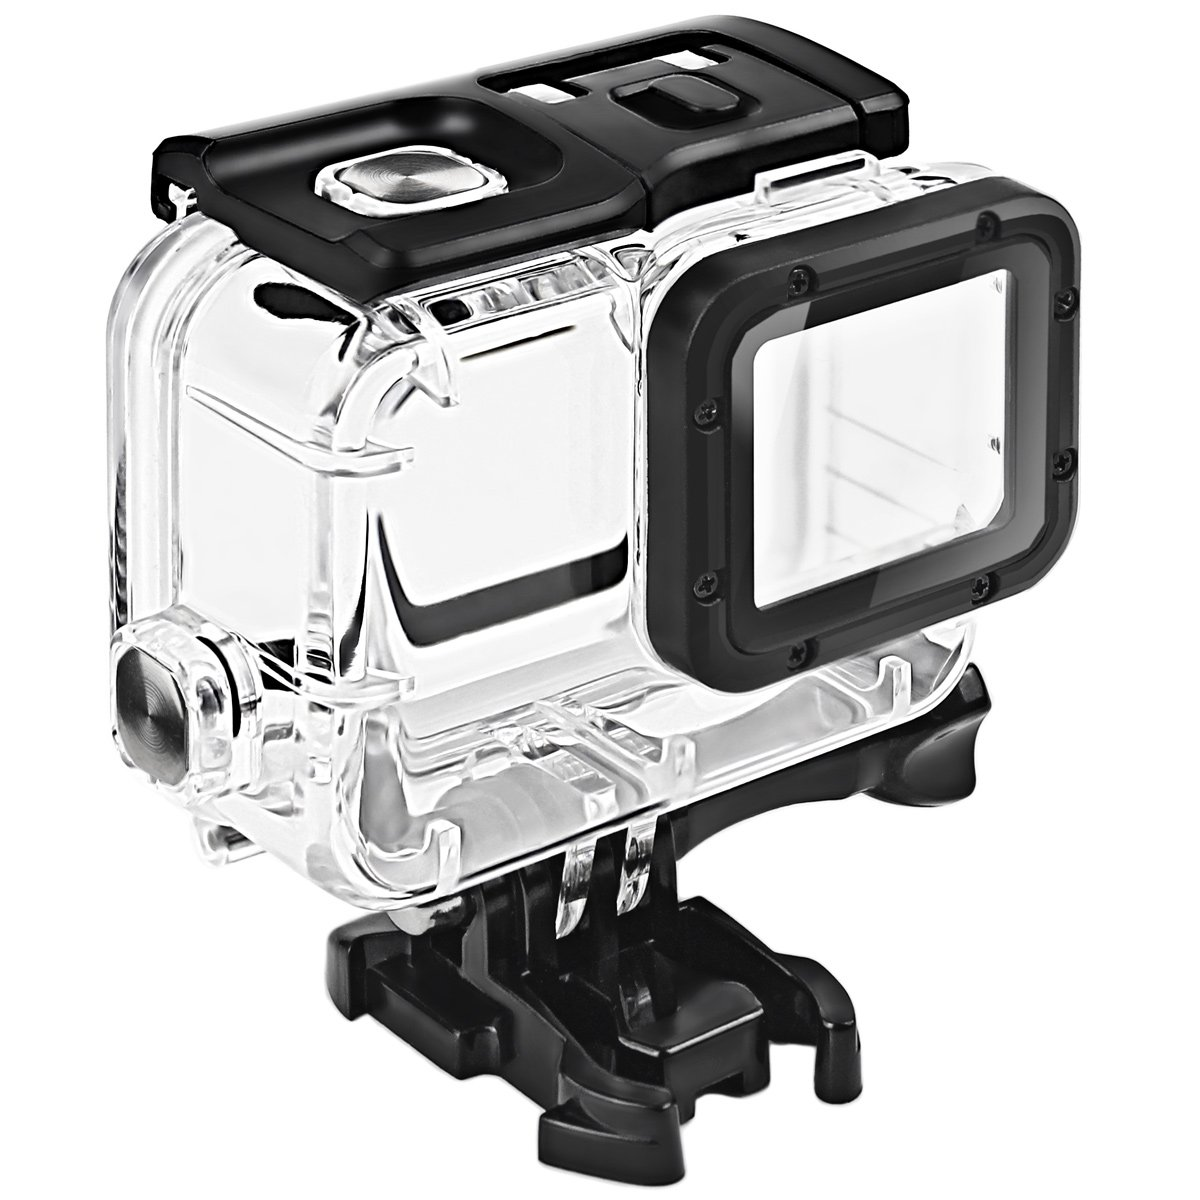 FitStill Waterproof Housing for GoPro HERO 2018/7/6/5 Black, Protective 45m Underwater Dive Case Shell with Bracket Accessories for Go Pro Hero7 Hero6 ...